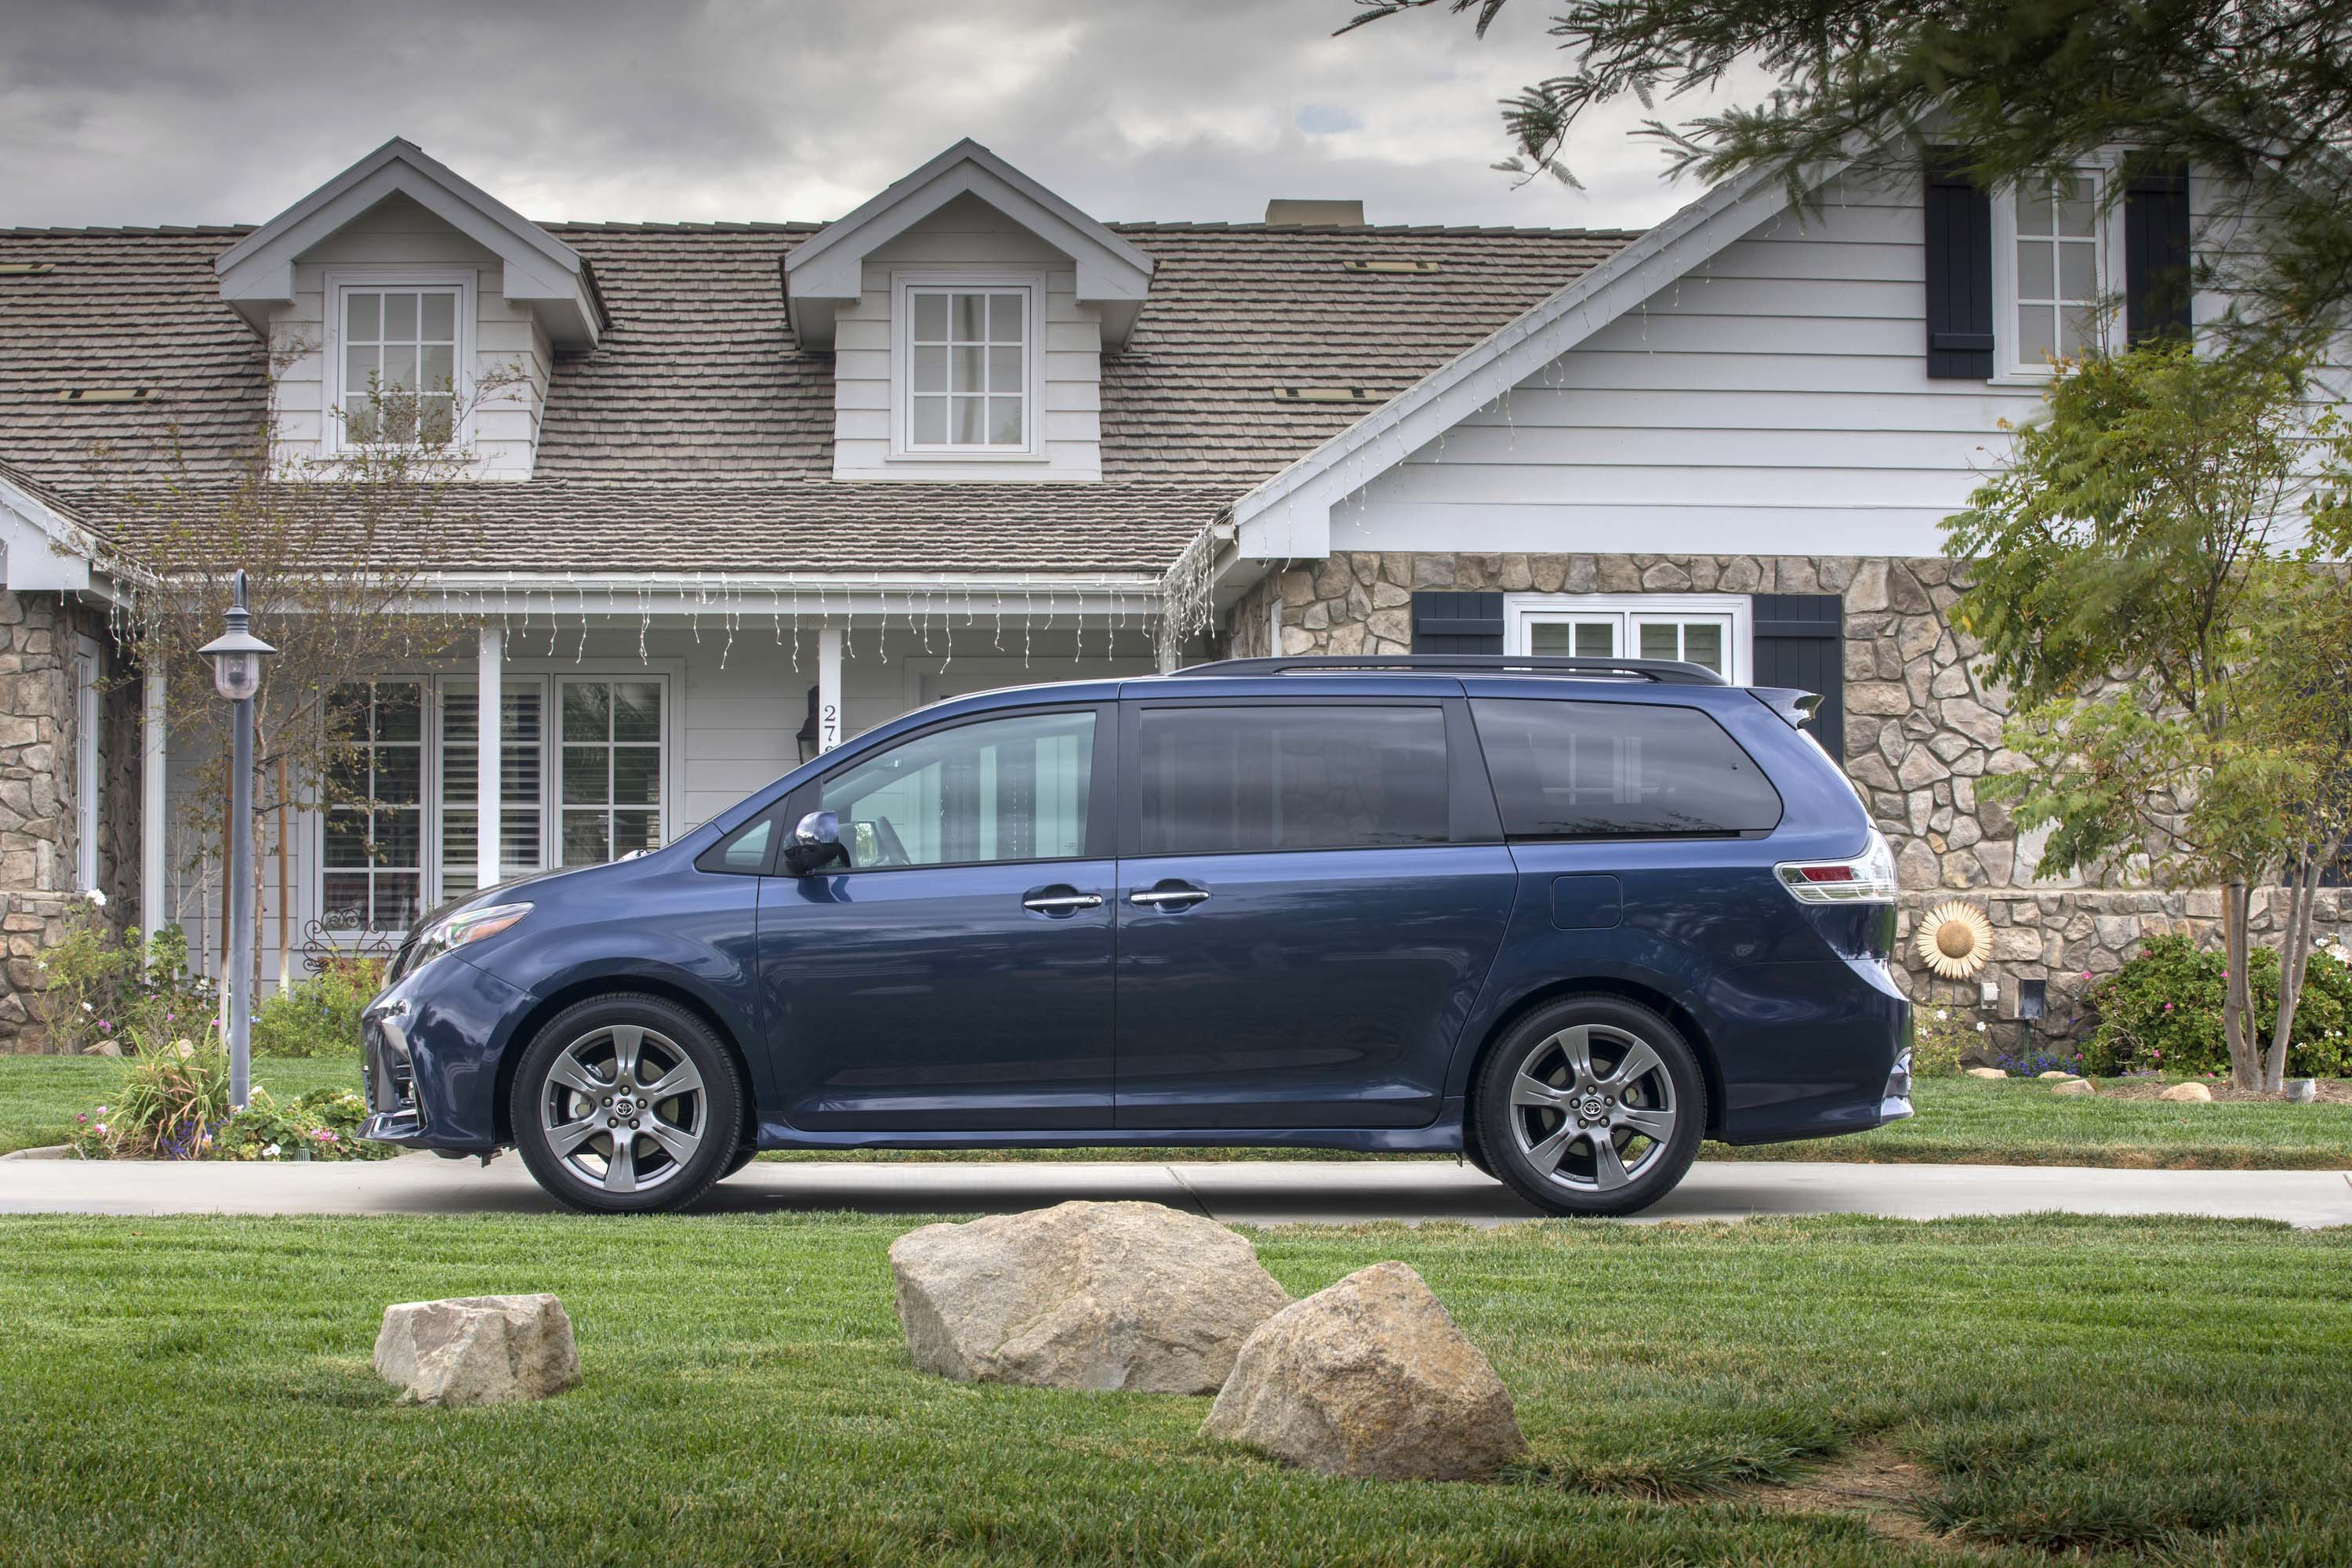 Toyota Sienna Dimensions >> 2019 Toyota Sienna Review Ratings Specs Prices And